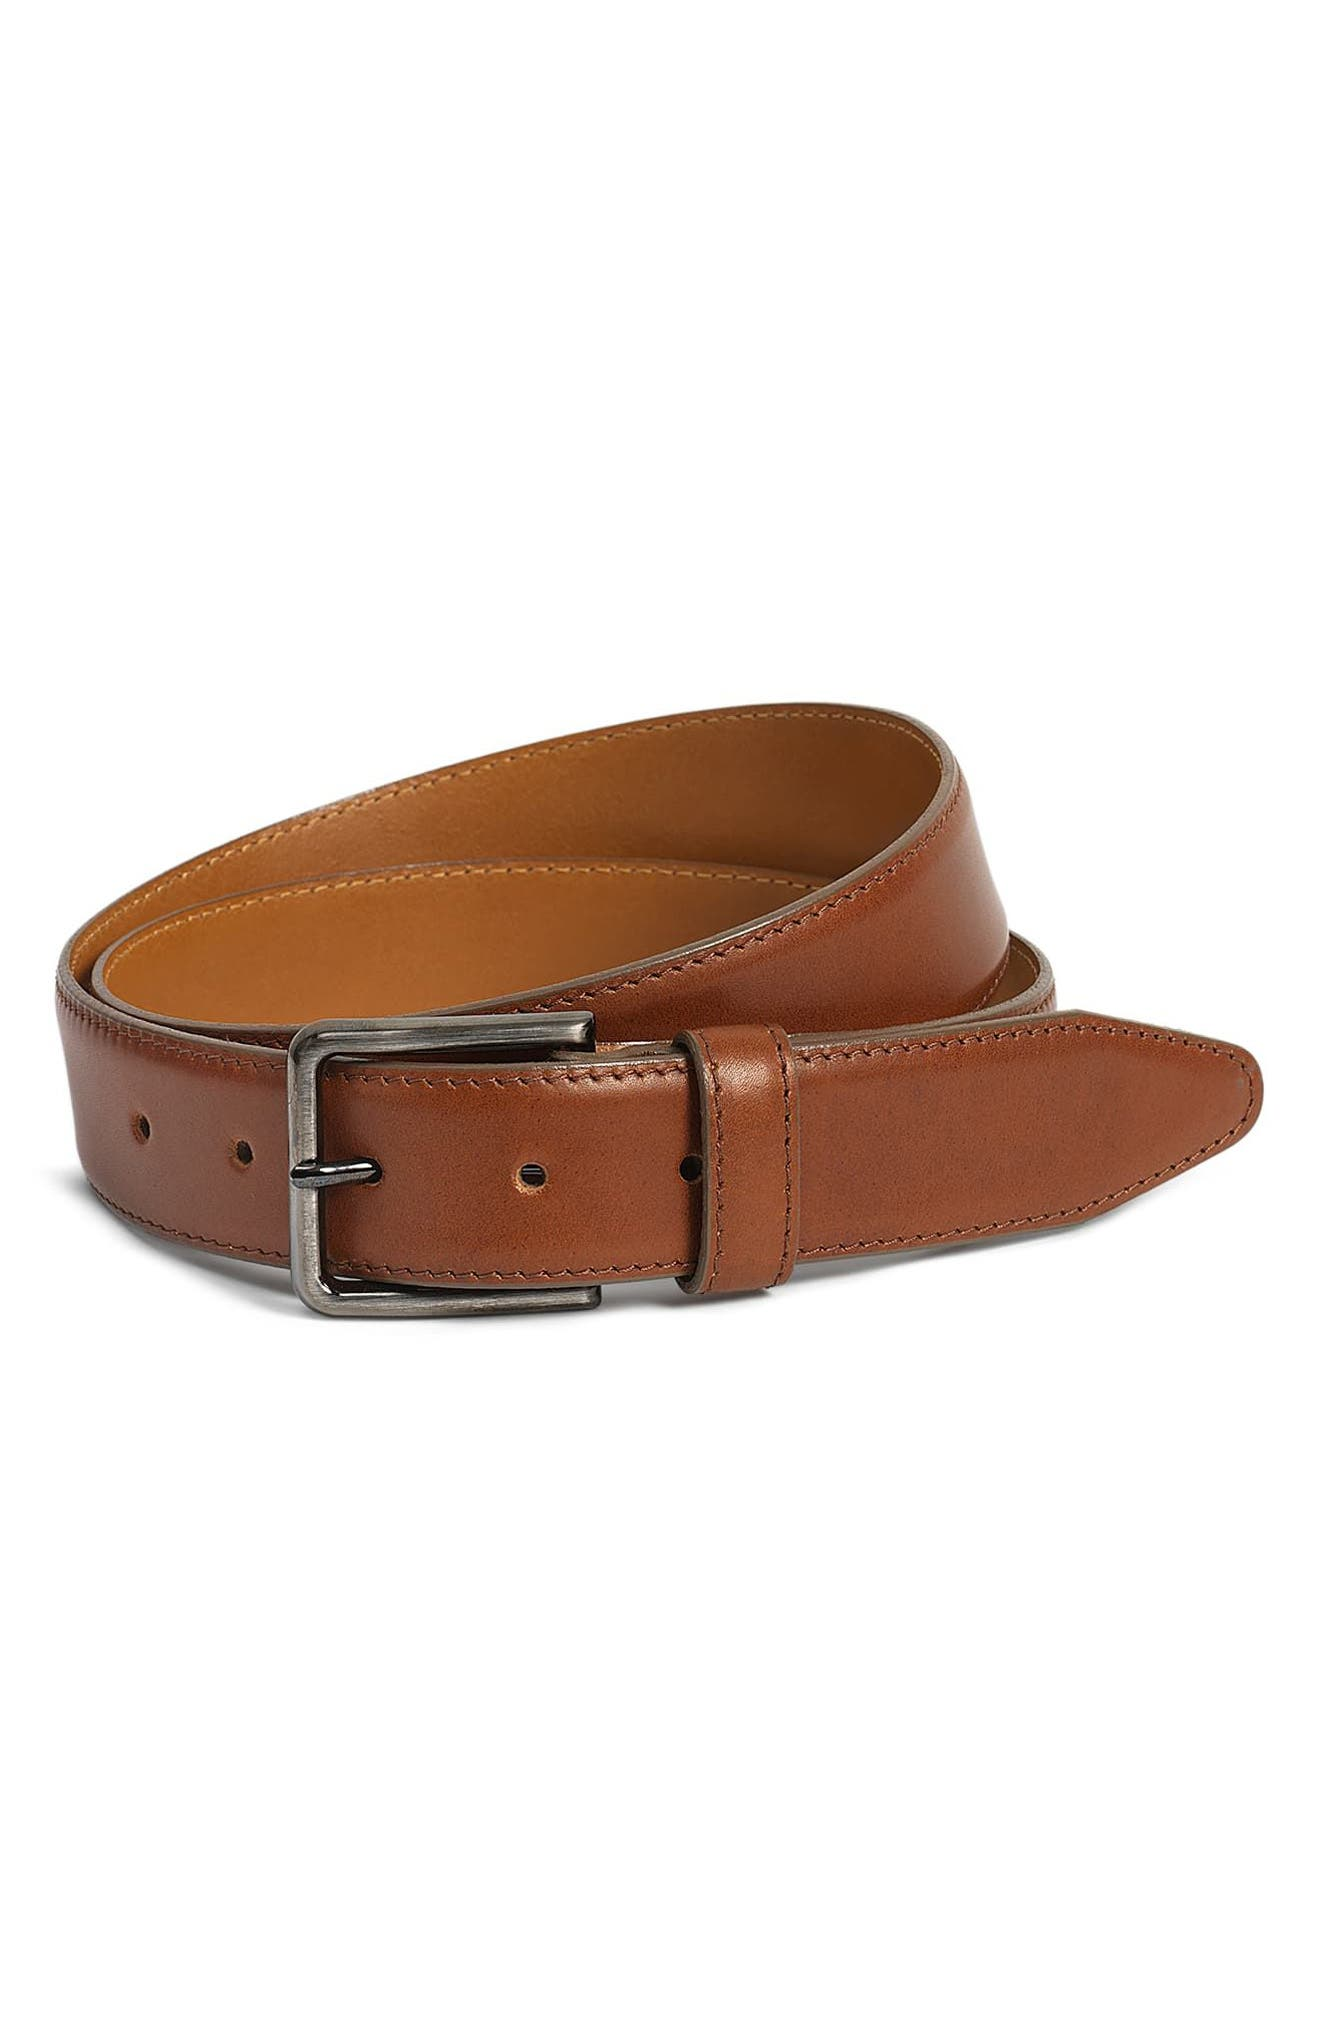 Flint Leather Belt,                             Main thumbnail 1, color,                             Tan